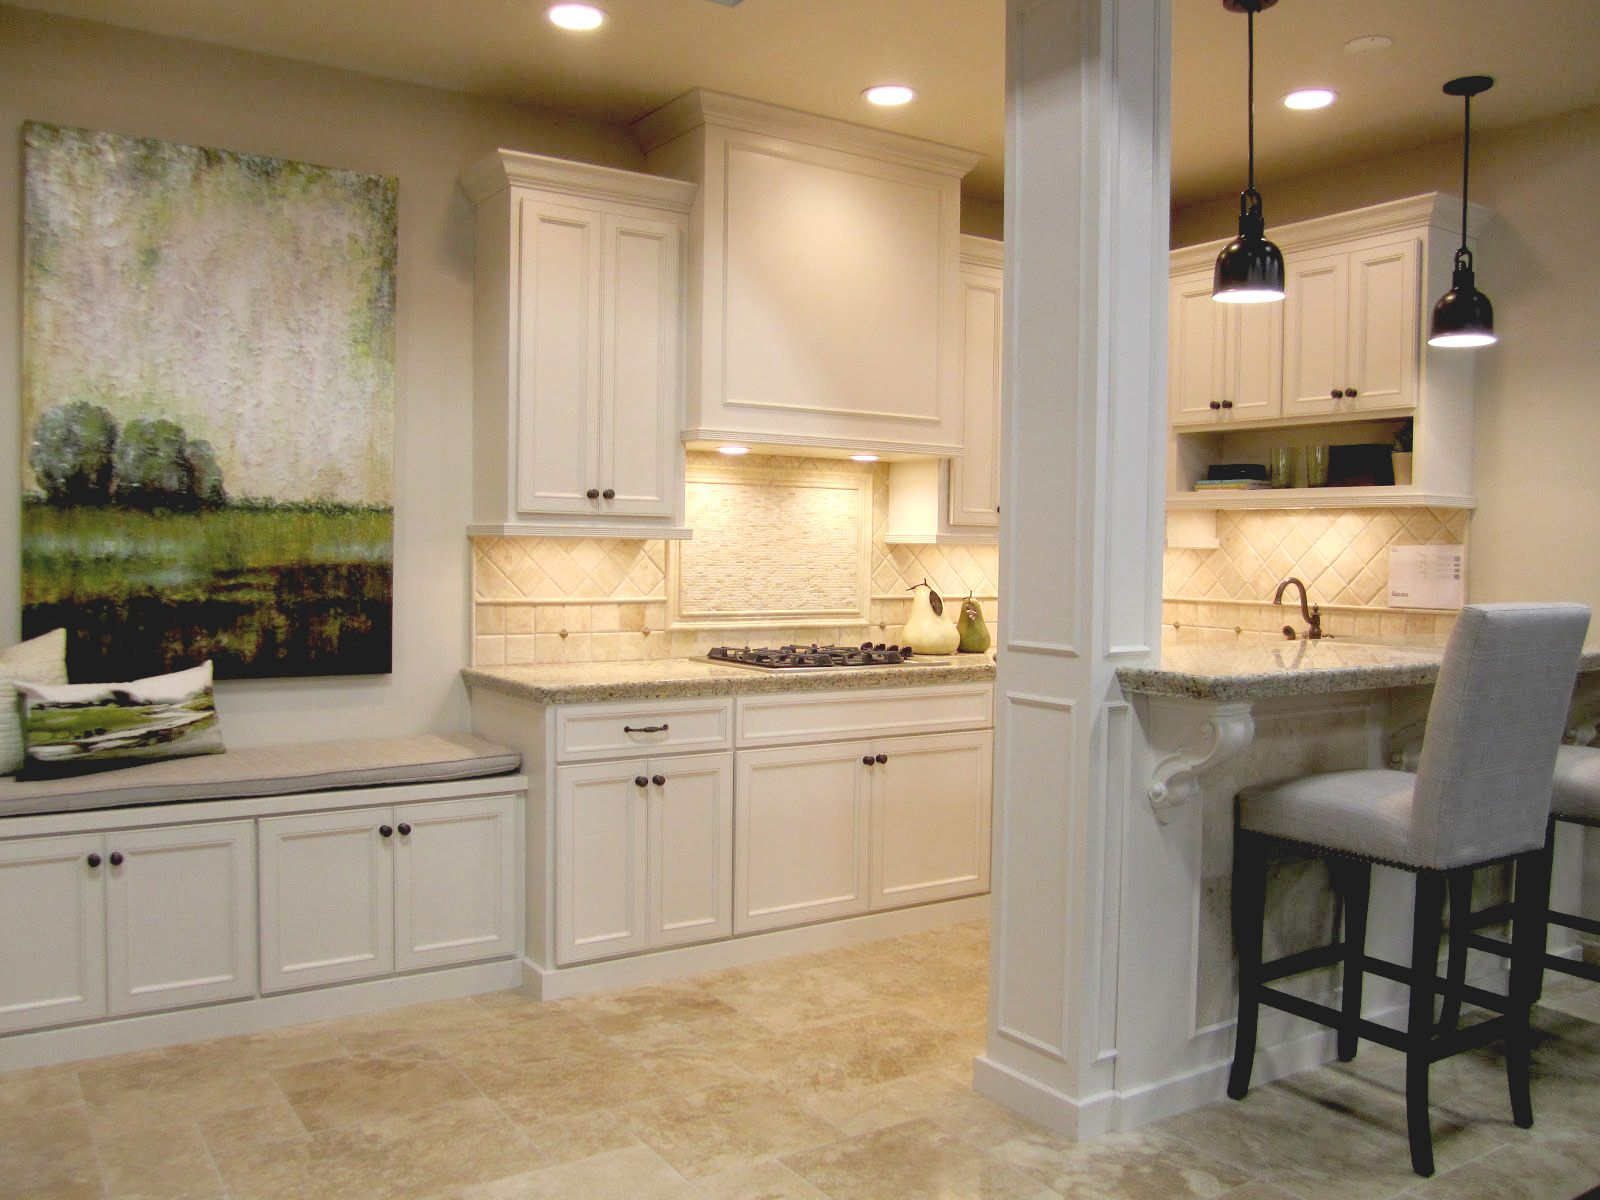 A cheery and inviting kitchen featuring our Bucak Travertine Versailles pattern on the floor #tile #thetileshop #travertine